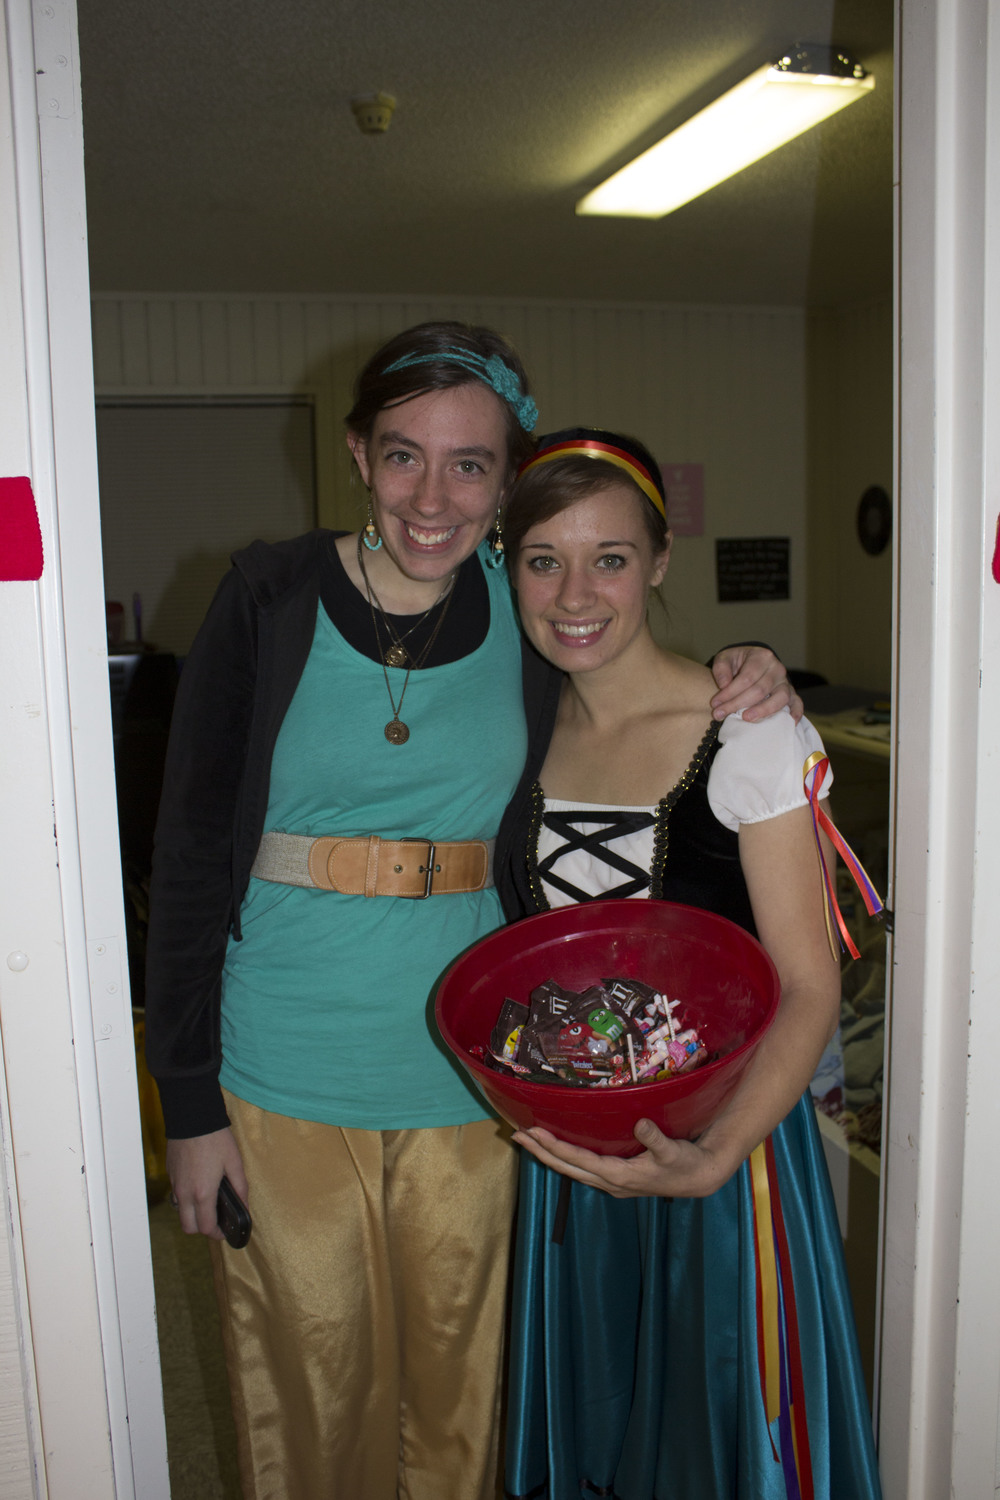 Juniors MaryEllen Lovin and Gabbi Miller show off their costumes while handing out candy to the kids that stop by.